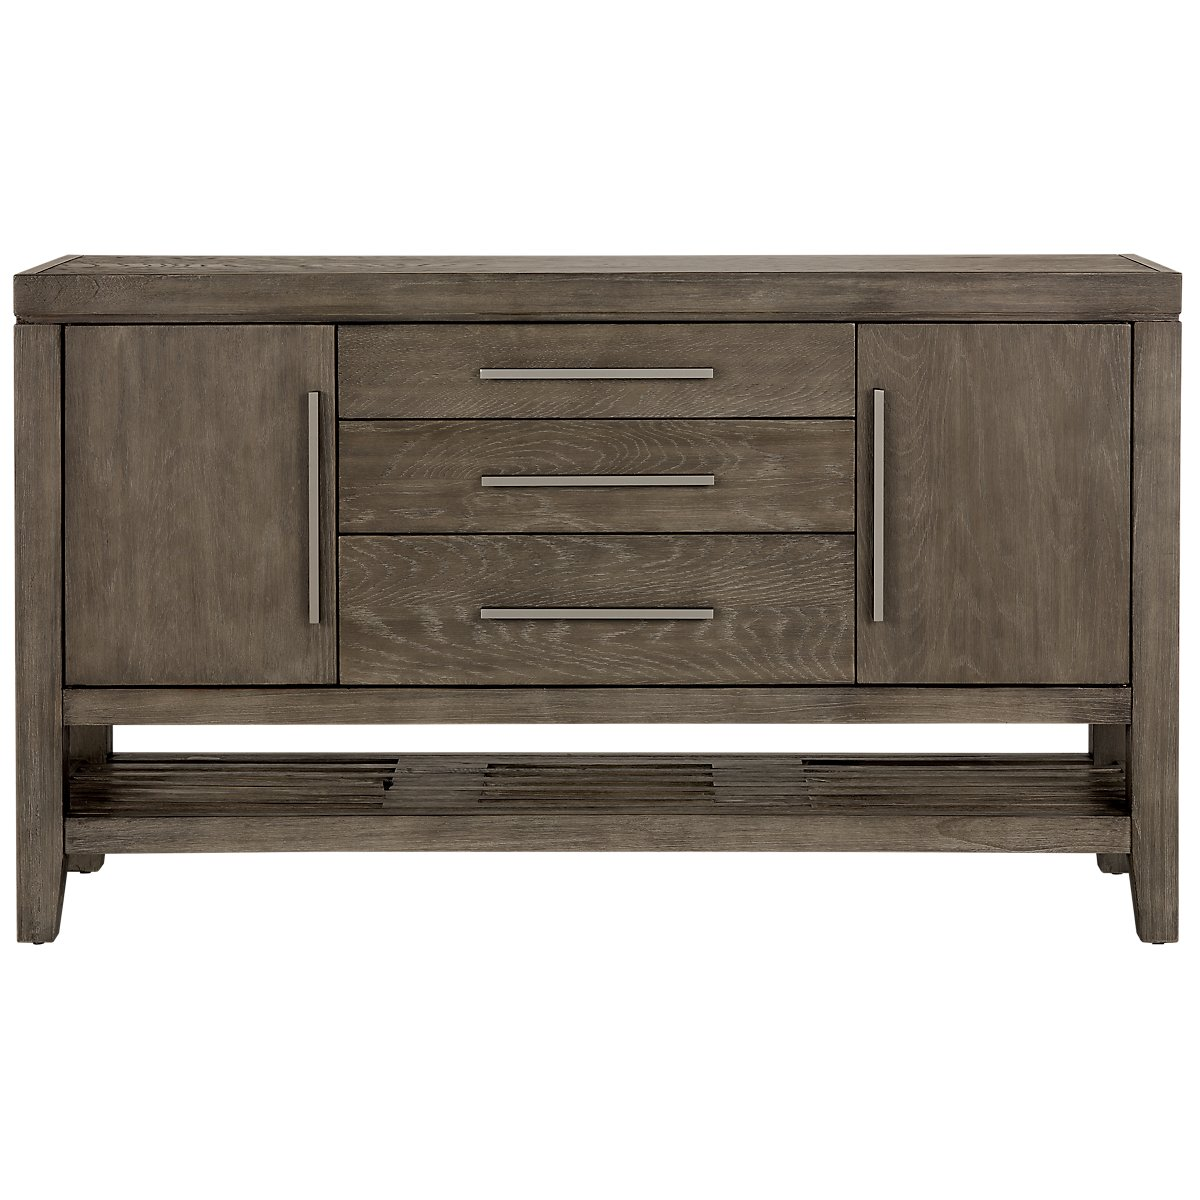 City Furniture Bravo Dark Tone Sideboard